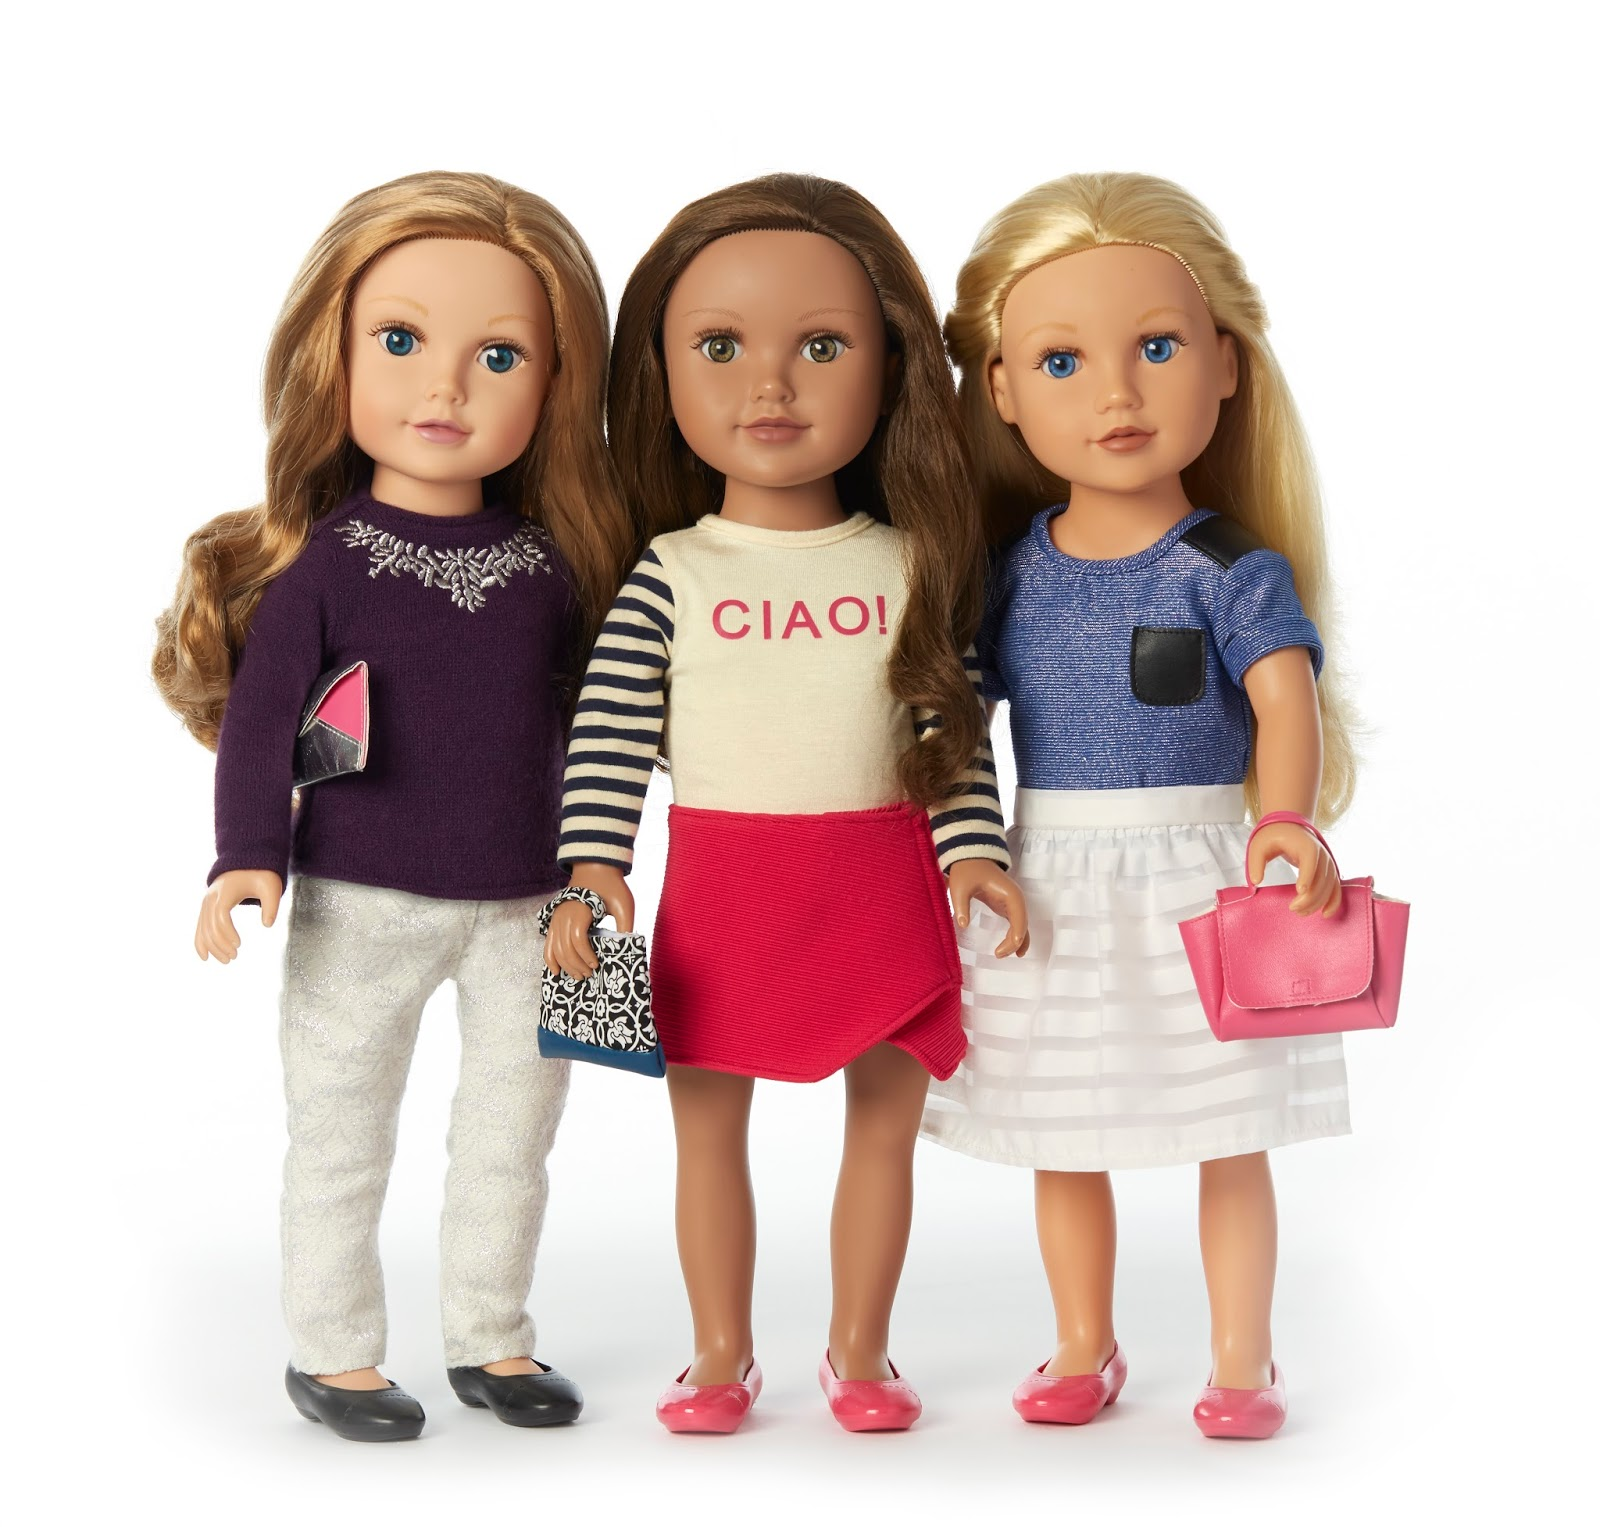 The Mommy s Guide Journey Girls From Toys R Us are